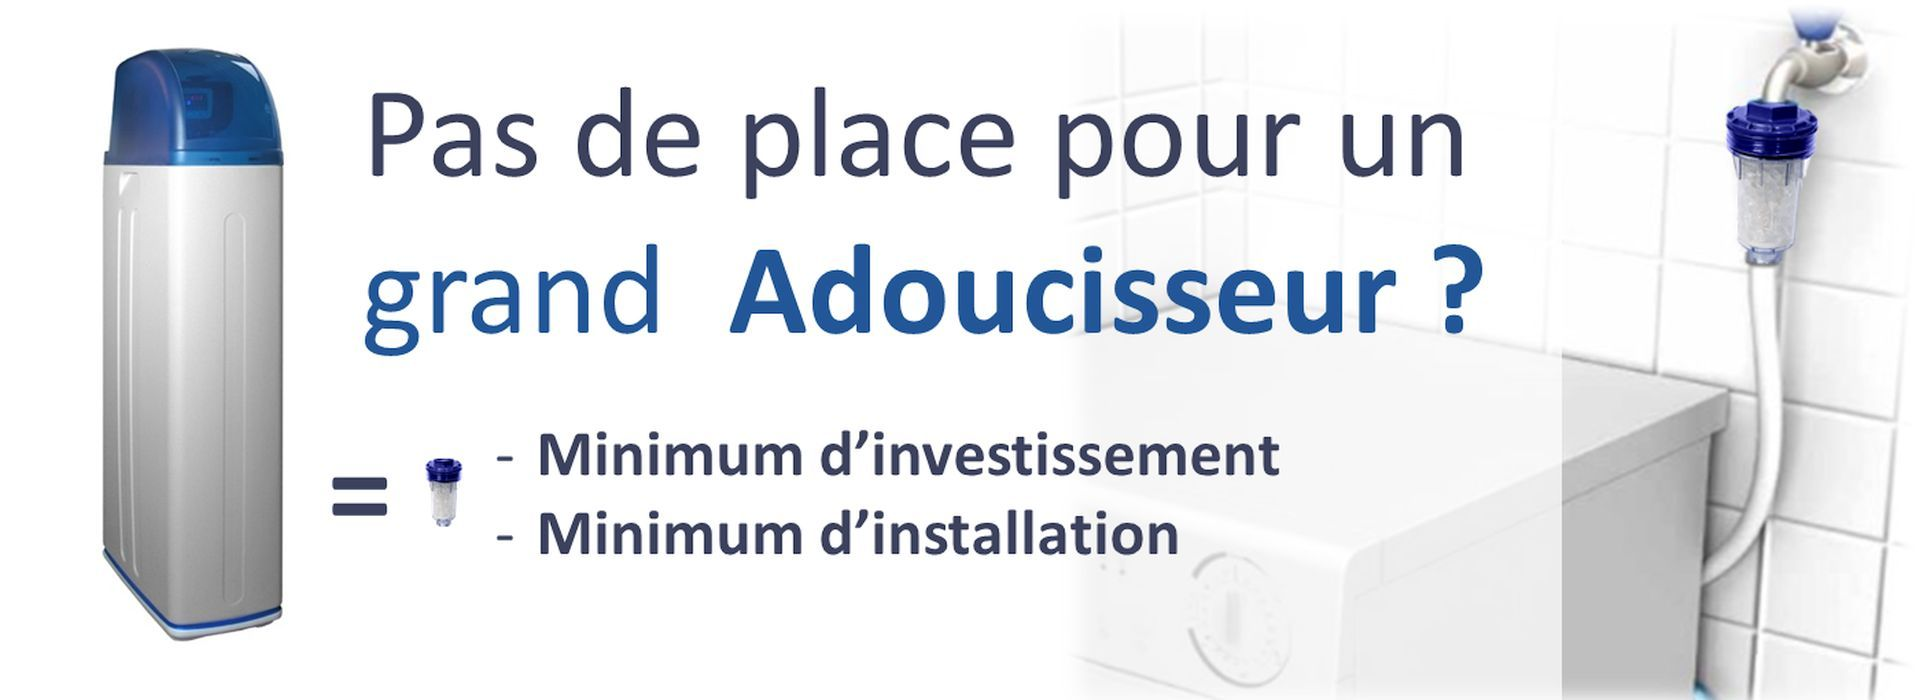 Blueau Pas de place pour un grand adoucisseur minimum d'investissement minimum d'installation